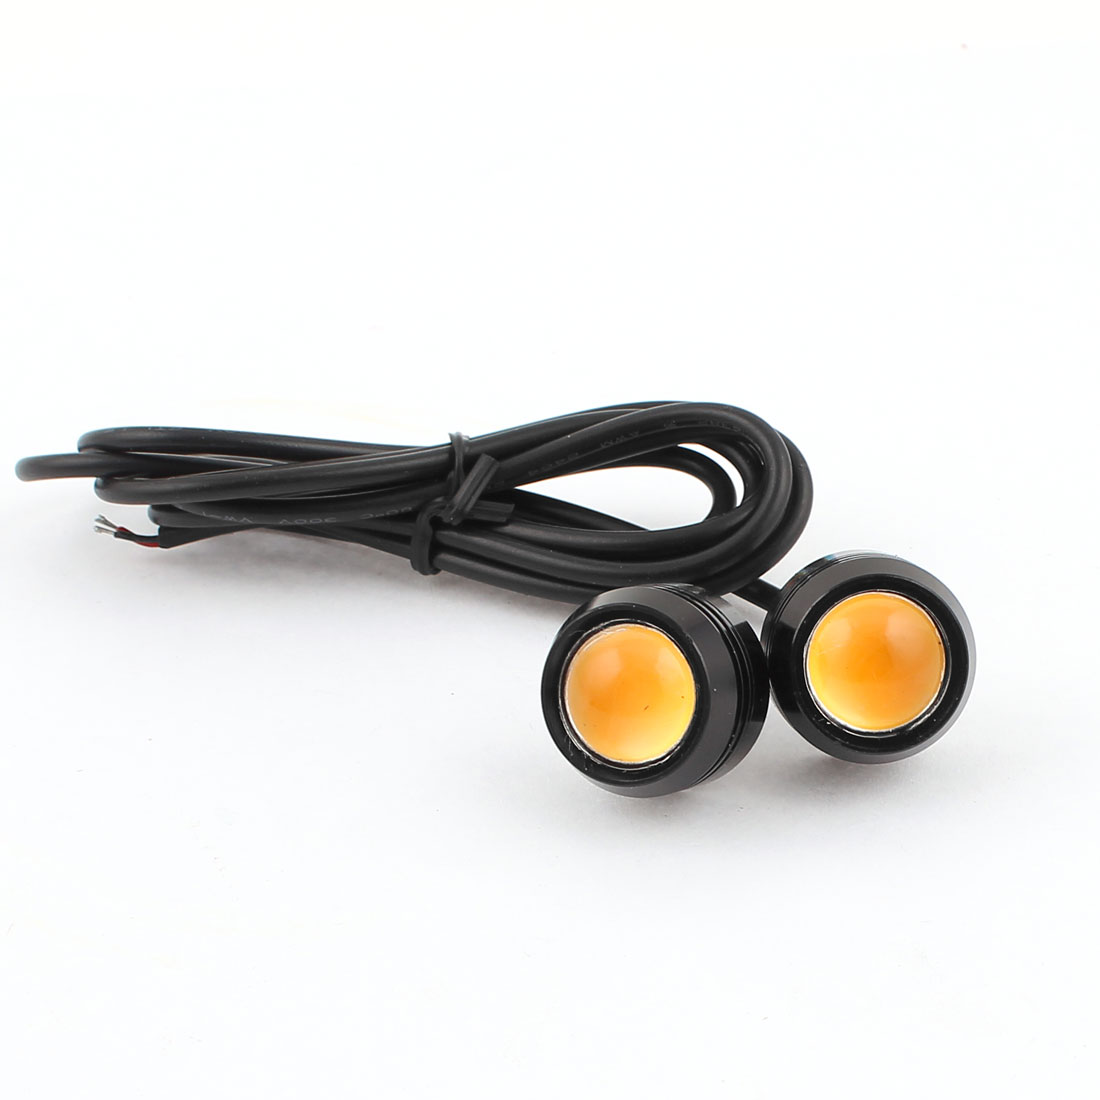 Pair 20mm Thread Eagle Eye Yellow LED Light DRL Daytime Running Backup Lamp